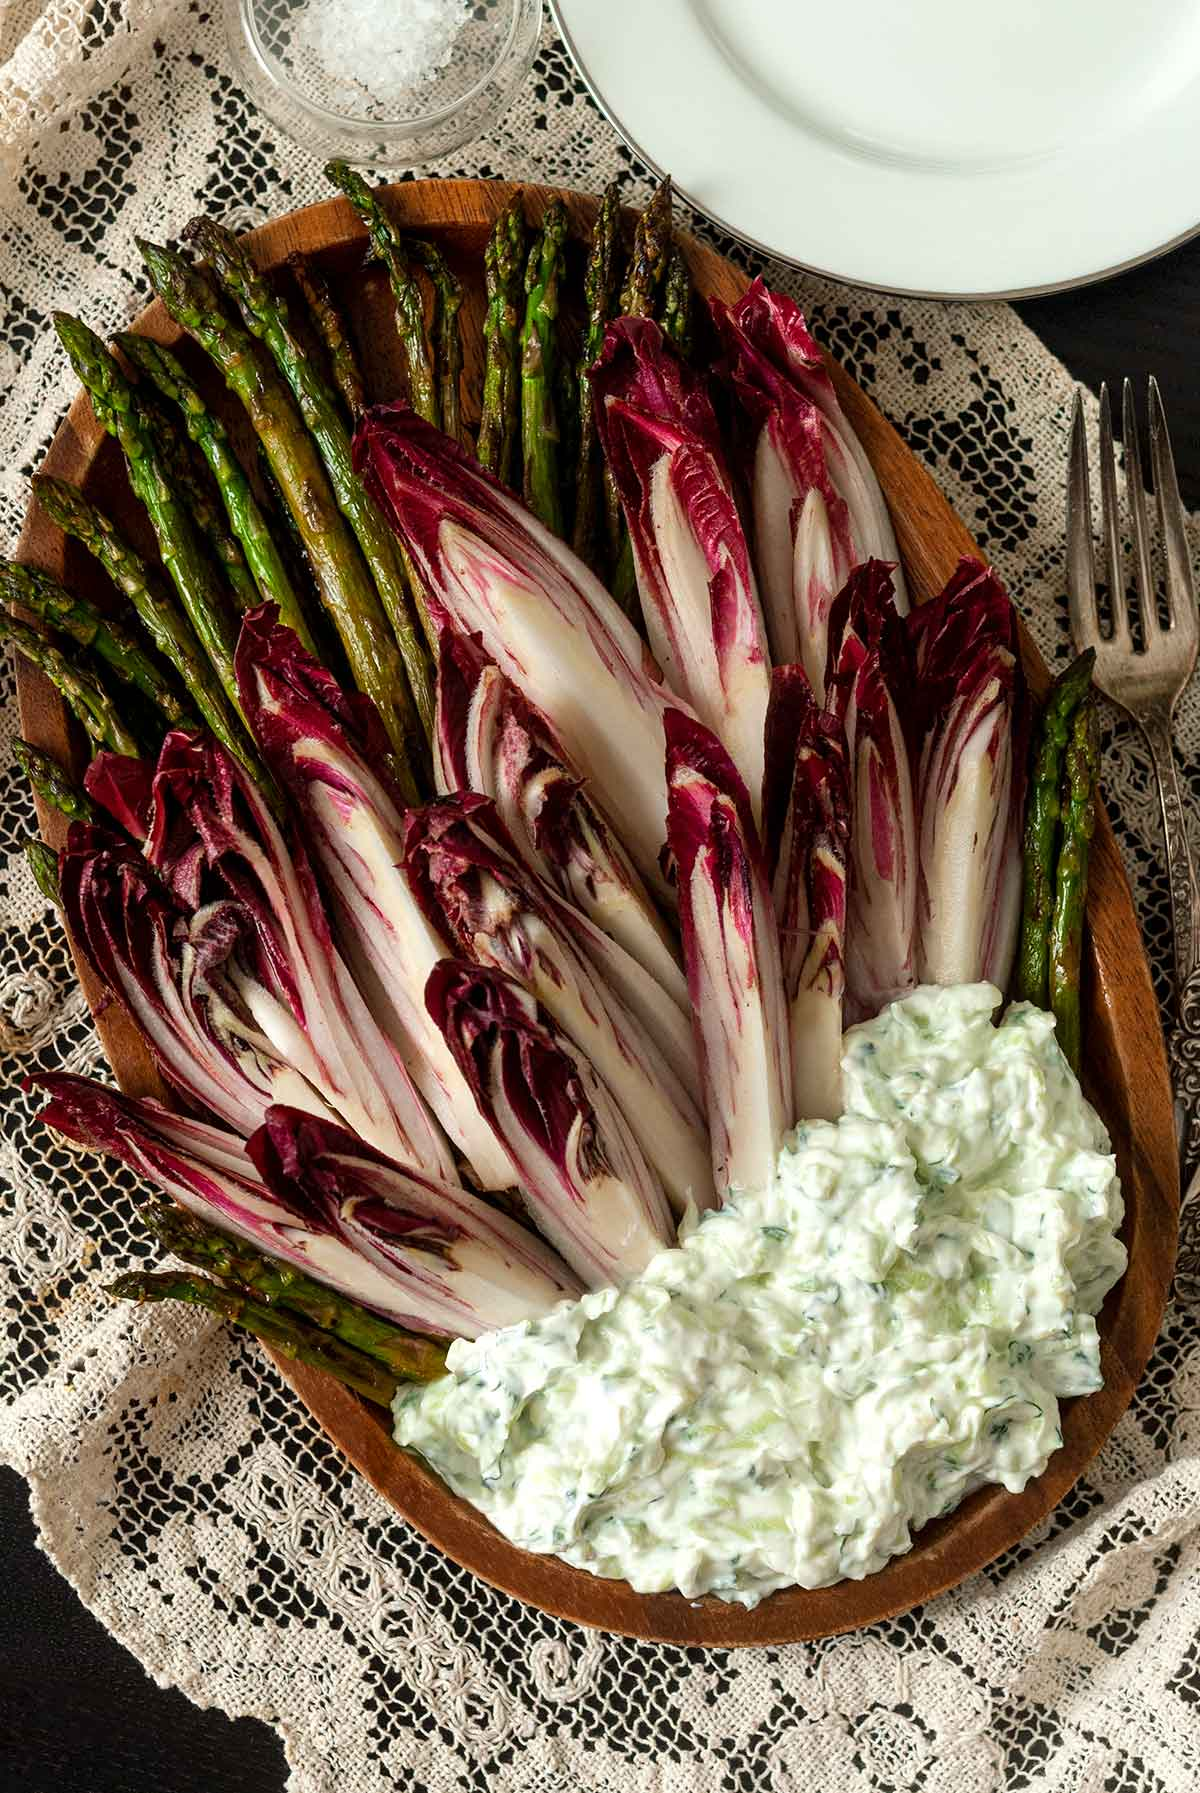 Endive and asparagus on a plate with a pile of tzatziki on a table cloth beside forks and plates.